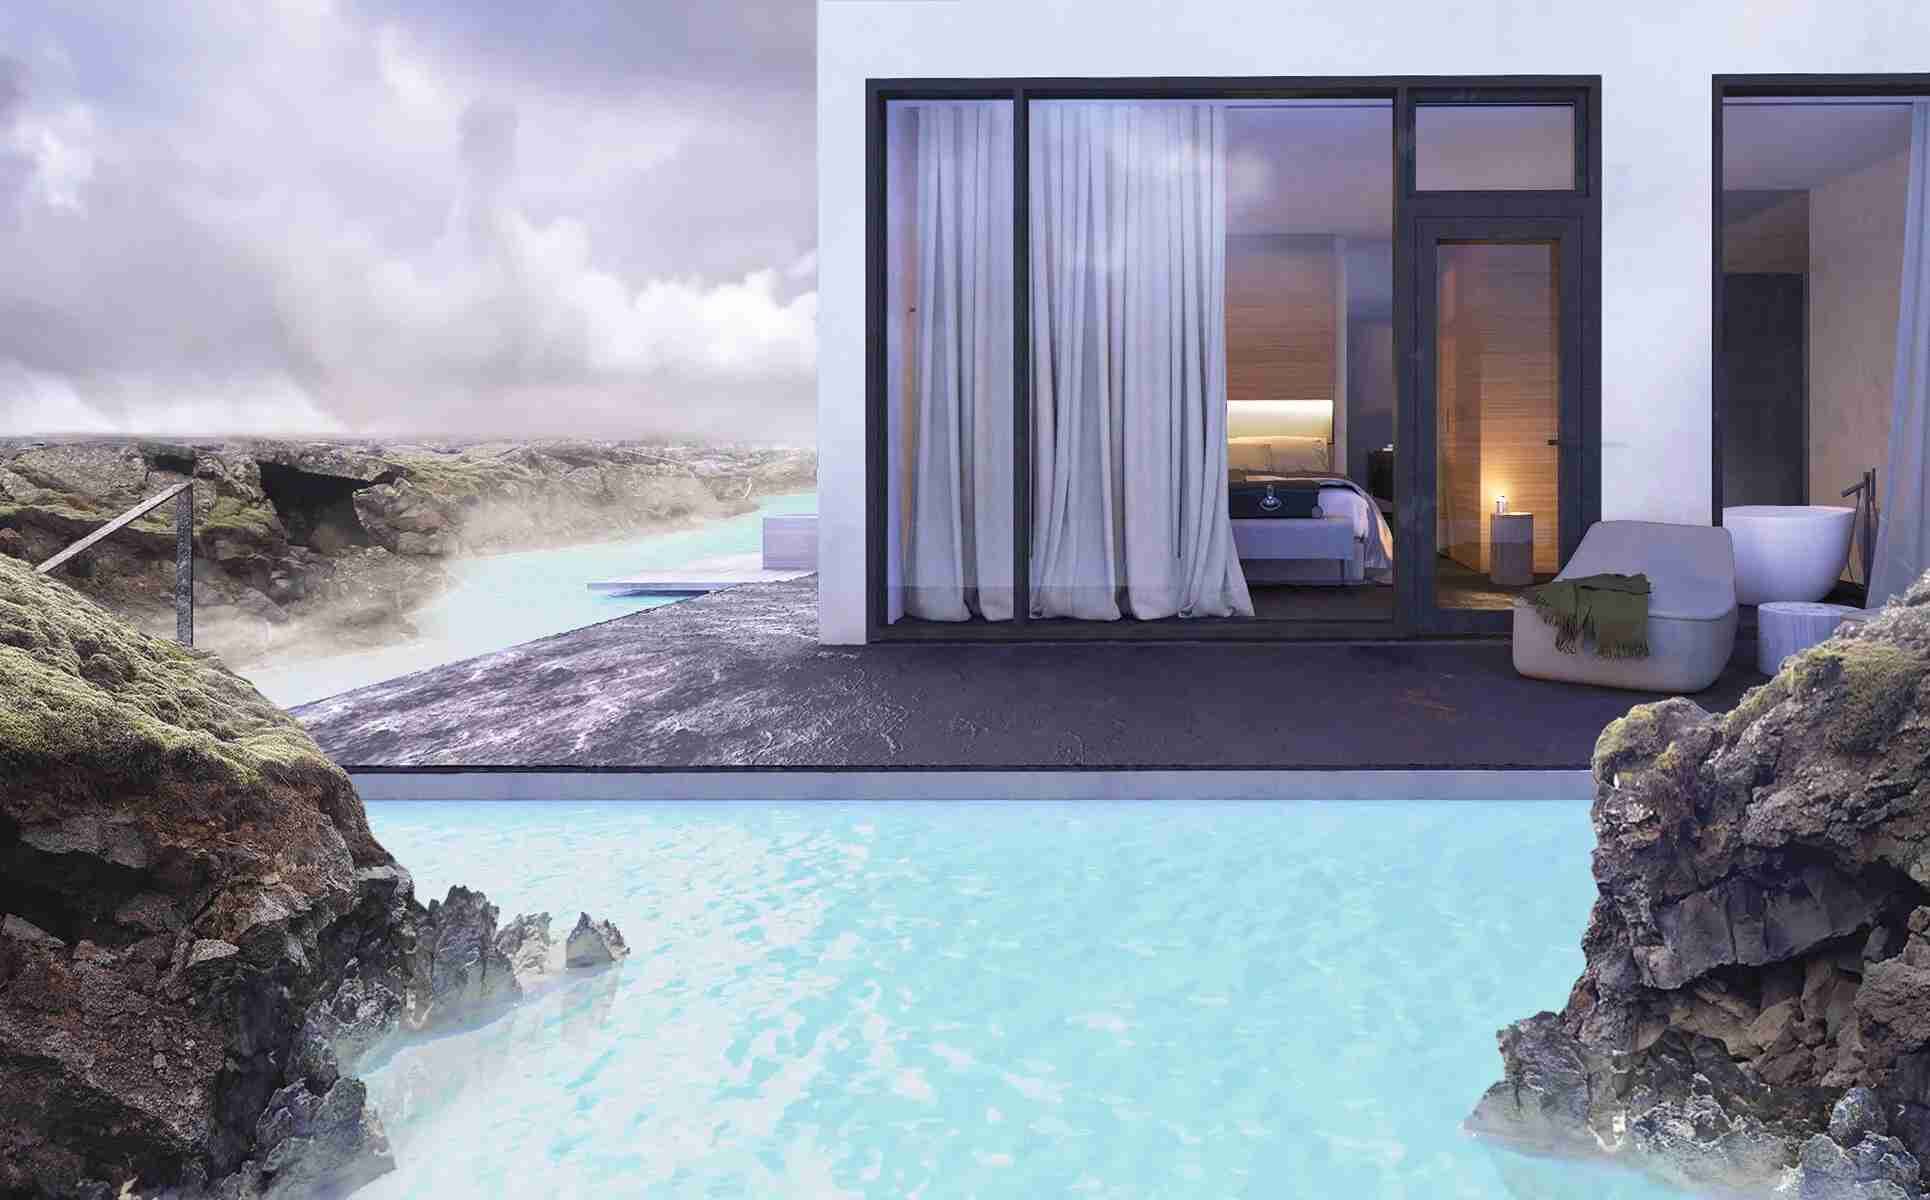 Some guest rooms have terraces that are built directly on top of the geothermal waters. Image courtesy of the hotel.